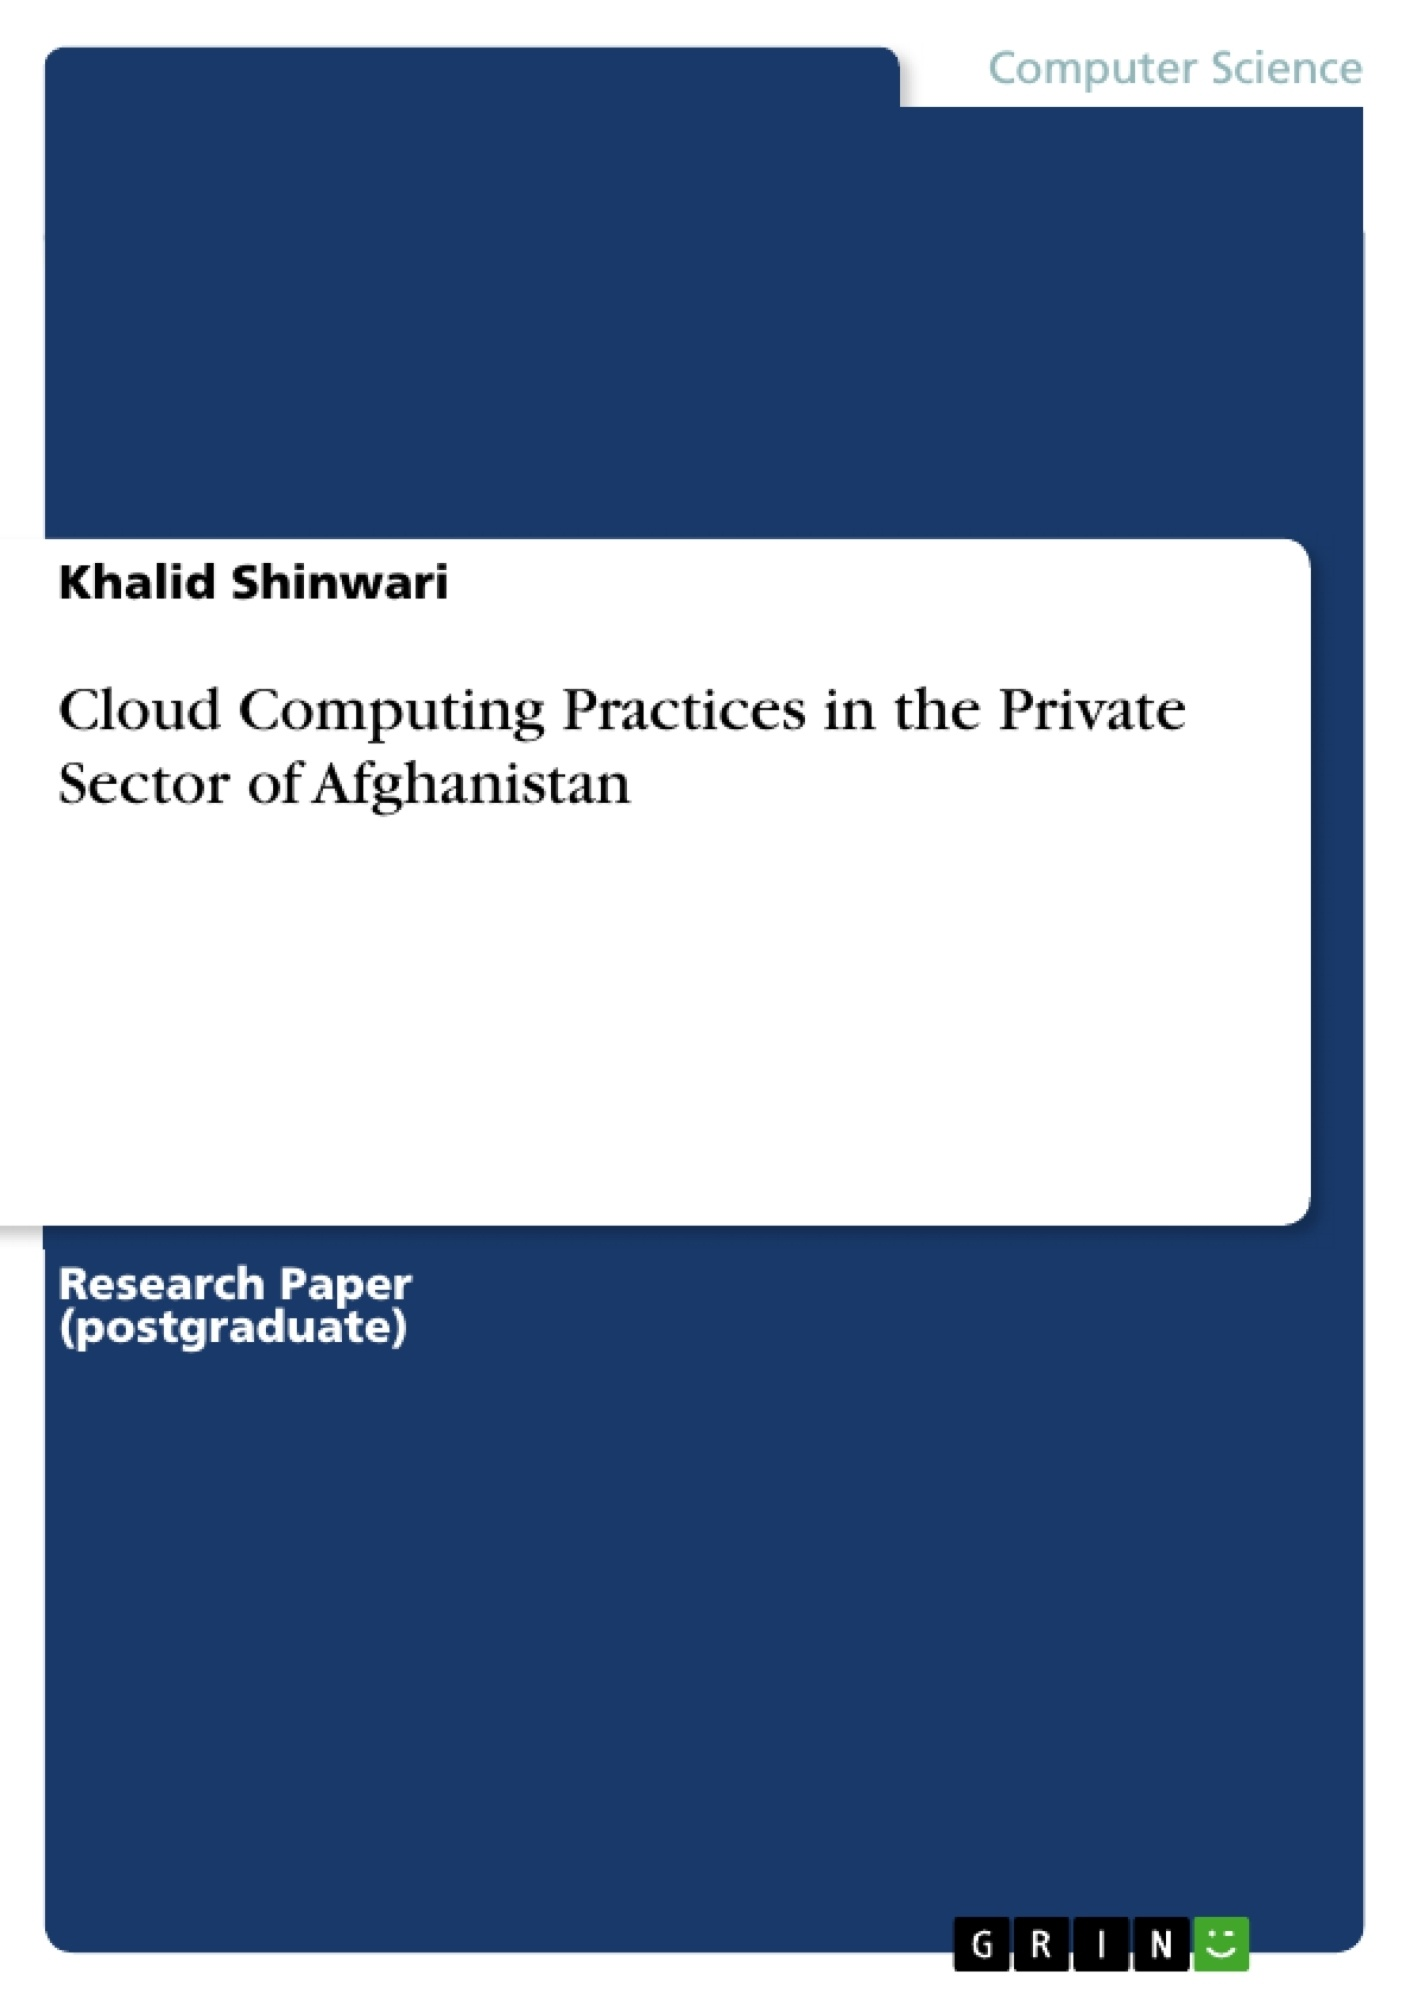 Title: Cloud Computing Practices in the Private Sector of Afghanistan